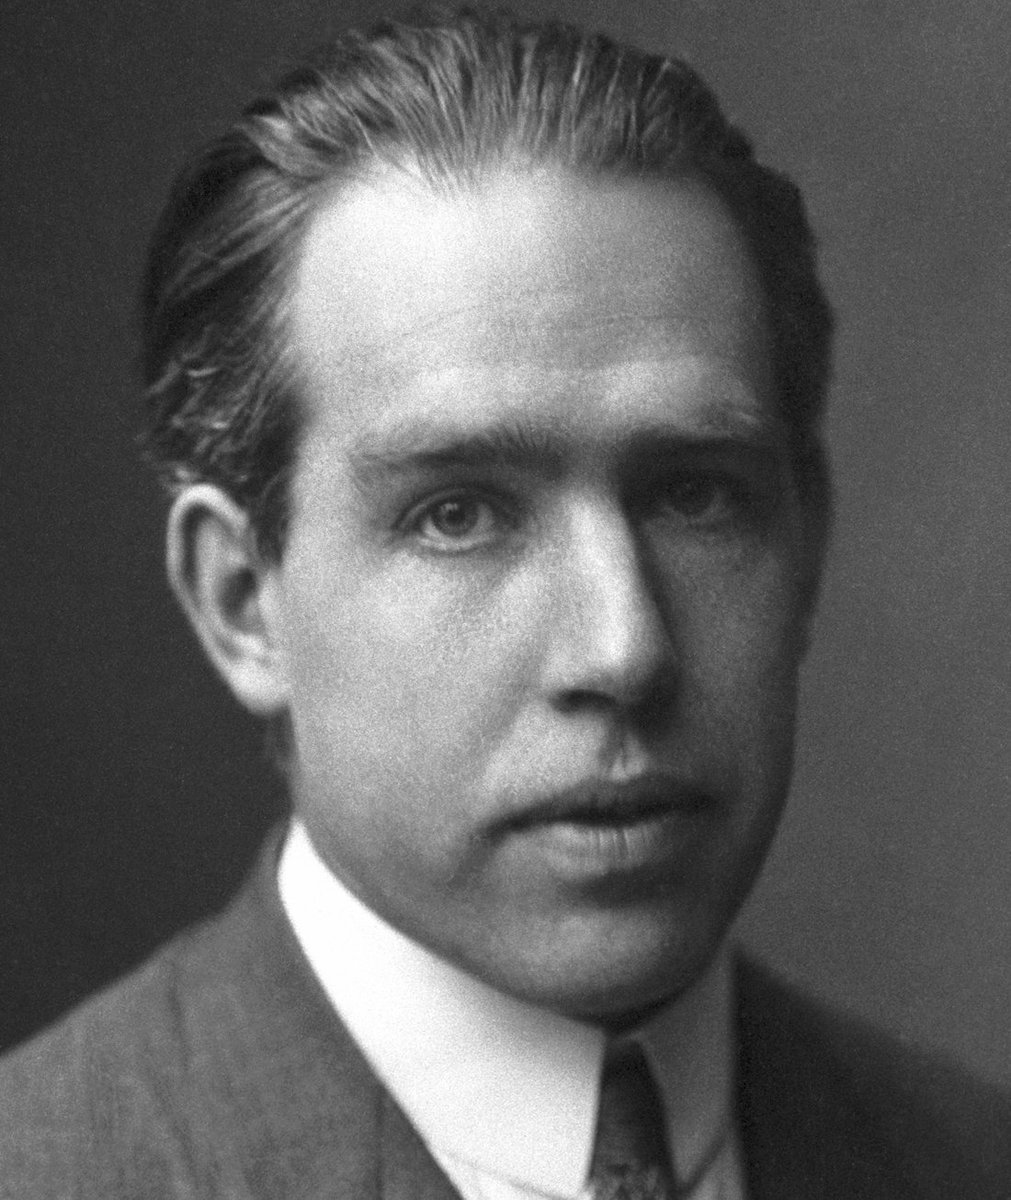 Danish Nobel Laureate Niels Bohr put his Nobel Medal up for auction March 12, 1940, to raise money to support Finnish civilians during the Winter War. The winning bid was anonymous, but later, Mr. Anonymous gave Bohrs medal to the @mus_nat_his, where it can be seen today.